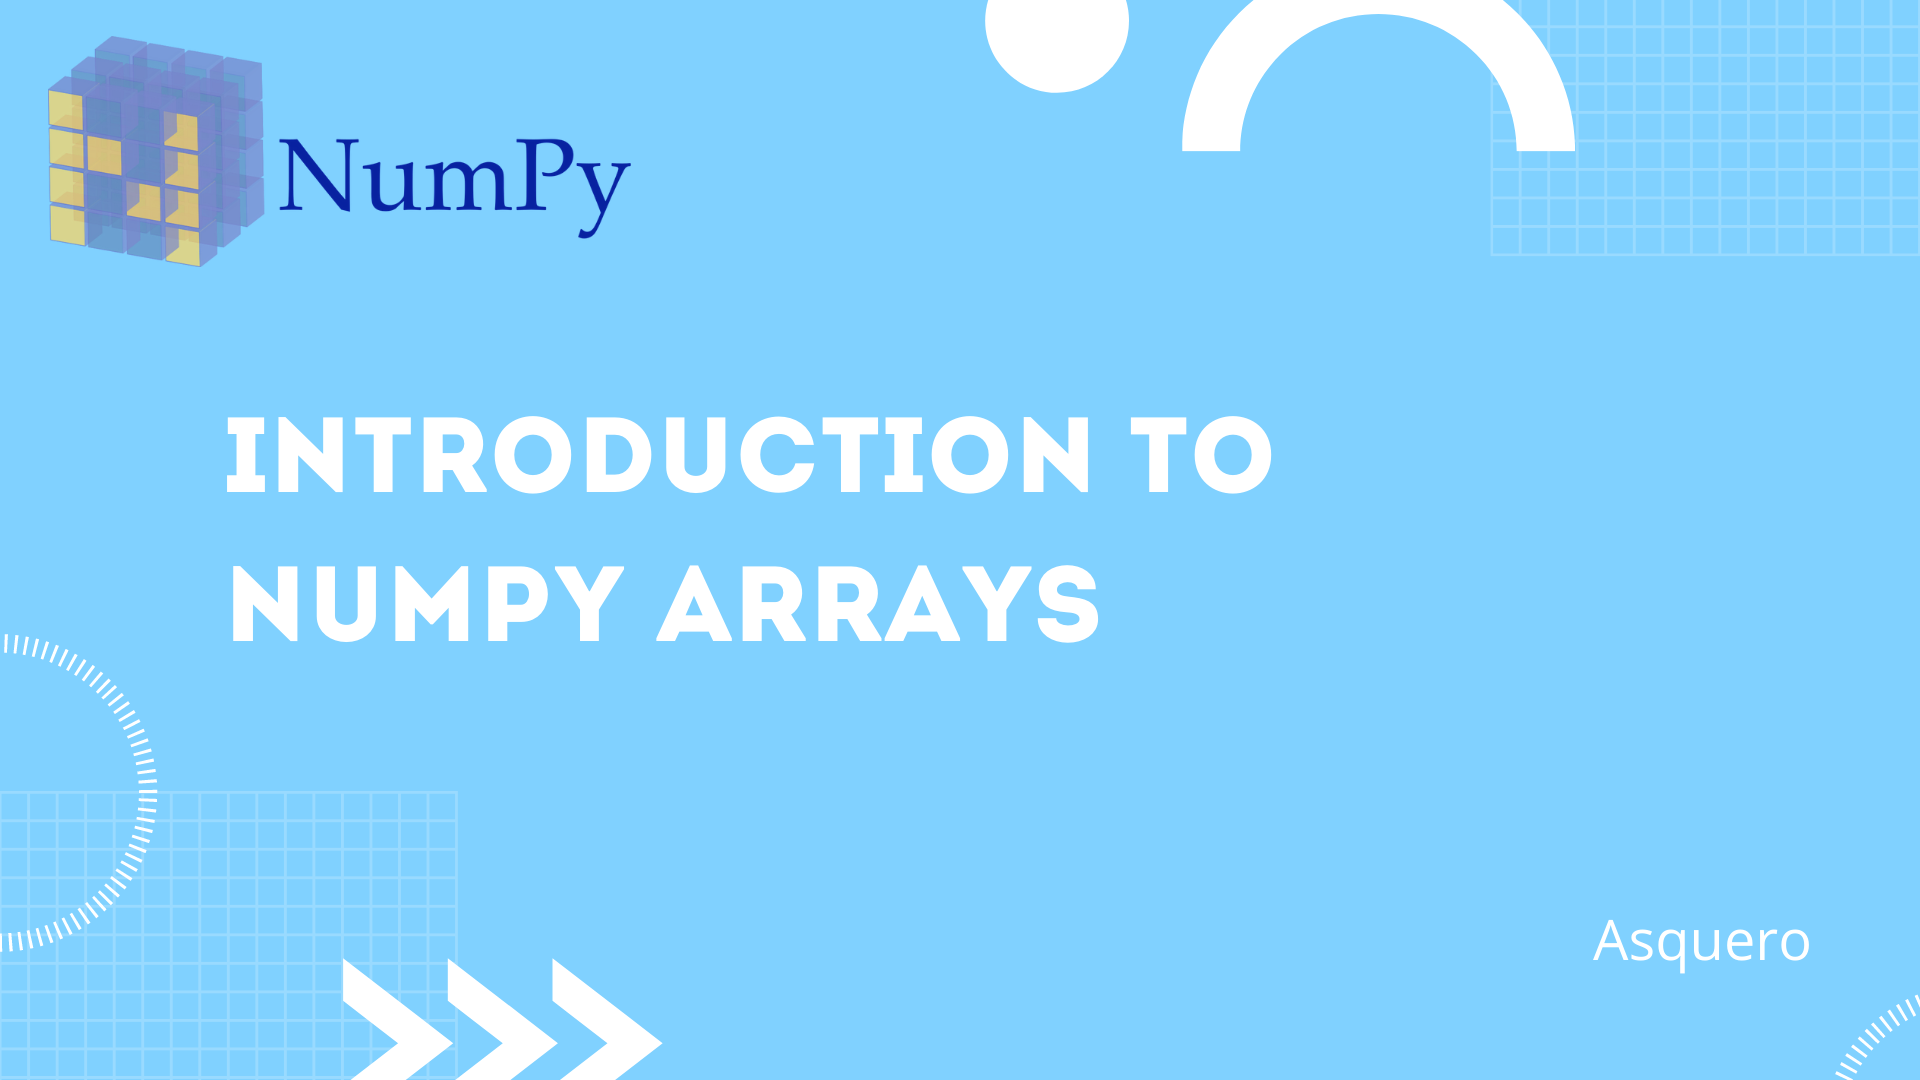 Introduction to NumPy arrays and their Attributes